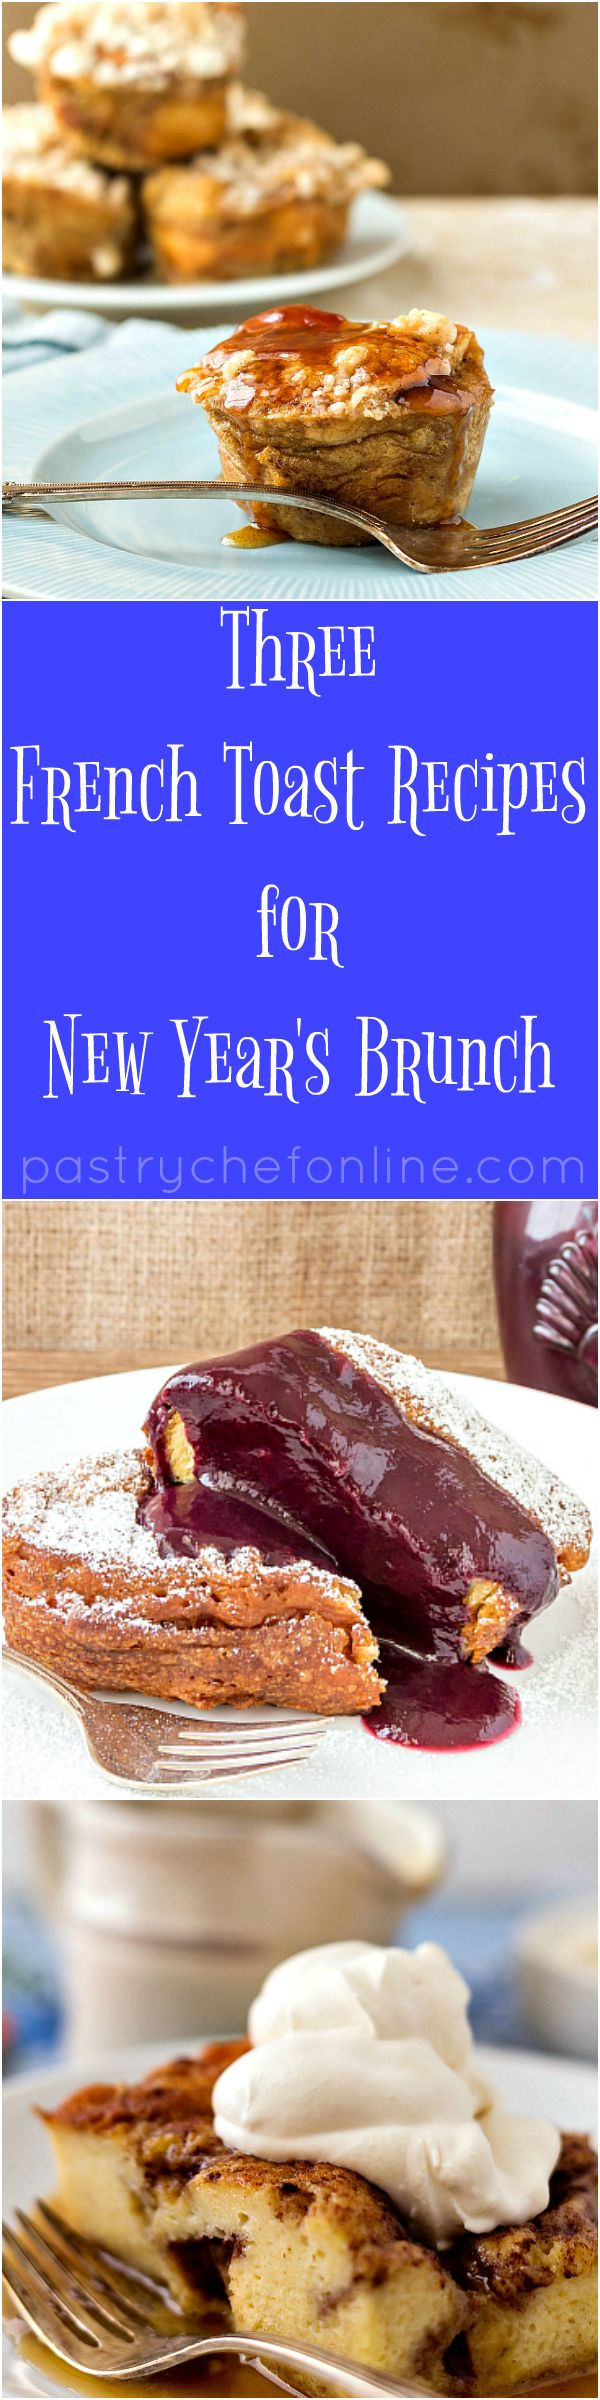 Enjoy These Three French Toast Recipes For New Years Brunch Or Anytime You Want A Different And Delicious French Toast Muffins Baked Or Deep Fried